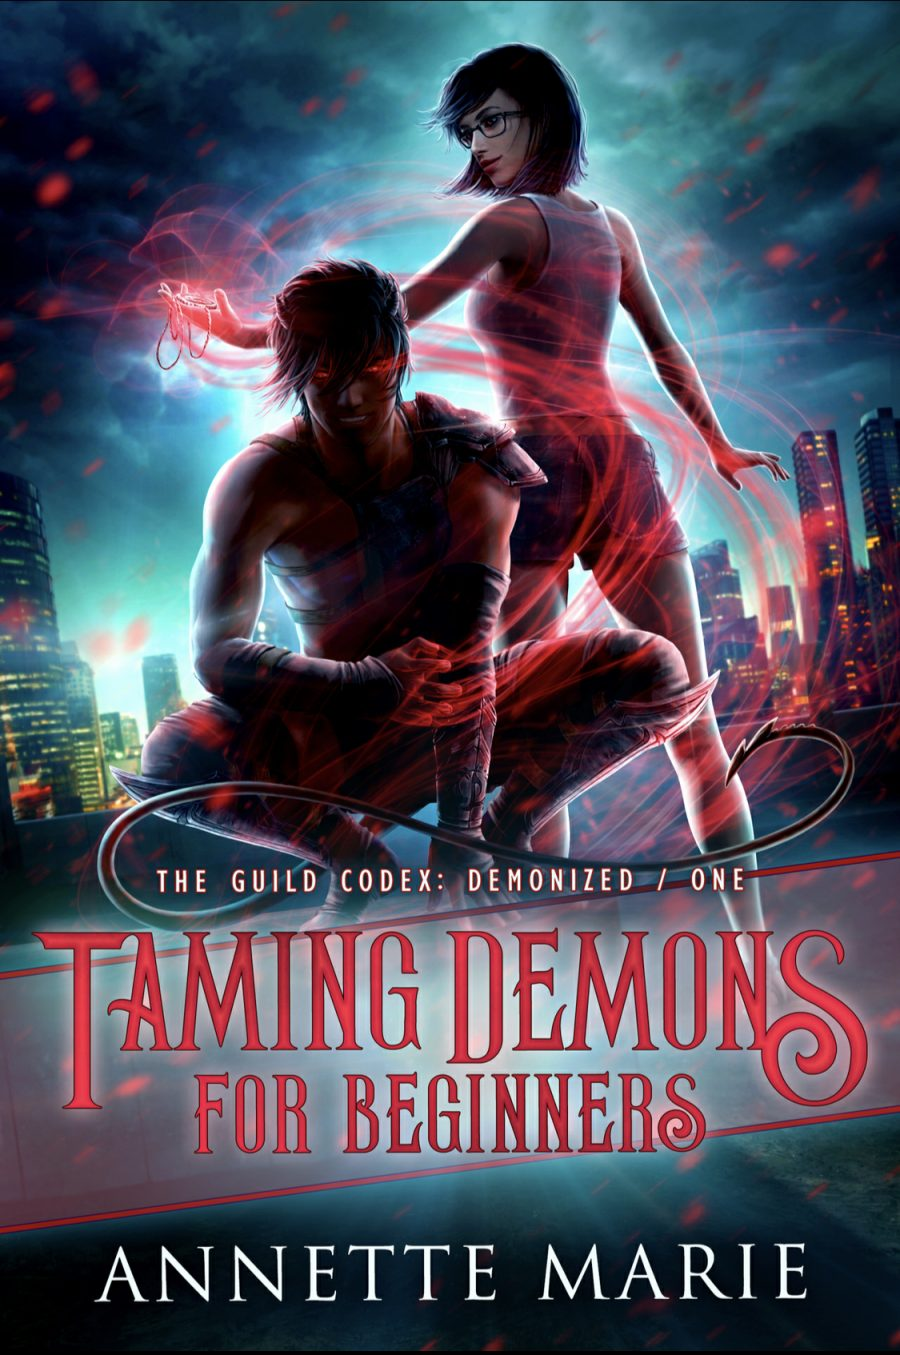 Taming Demons For Beginners by Annette Marie - A Book Review #BookReview #UrbanFantasy #UF #NewSeries #KindleUnlimited #KU